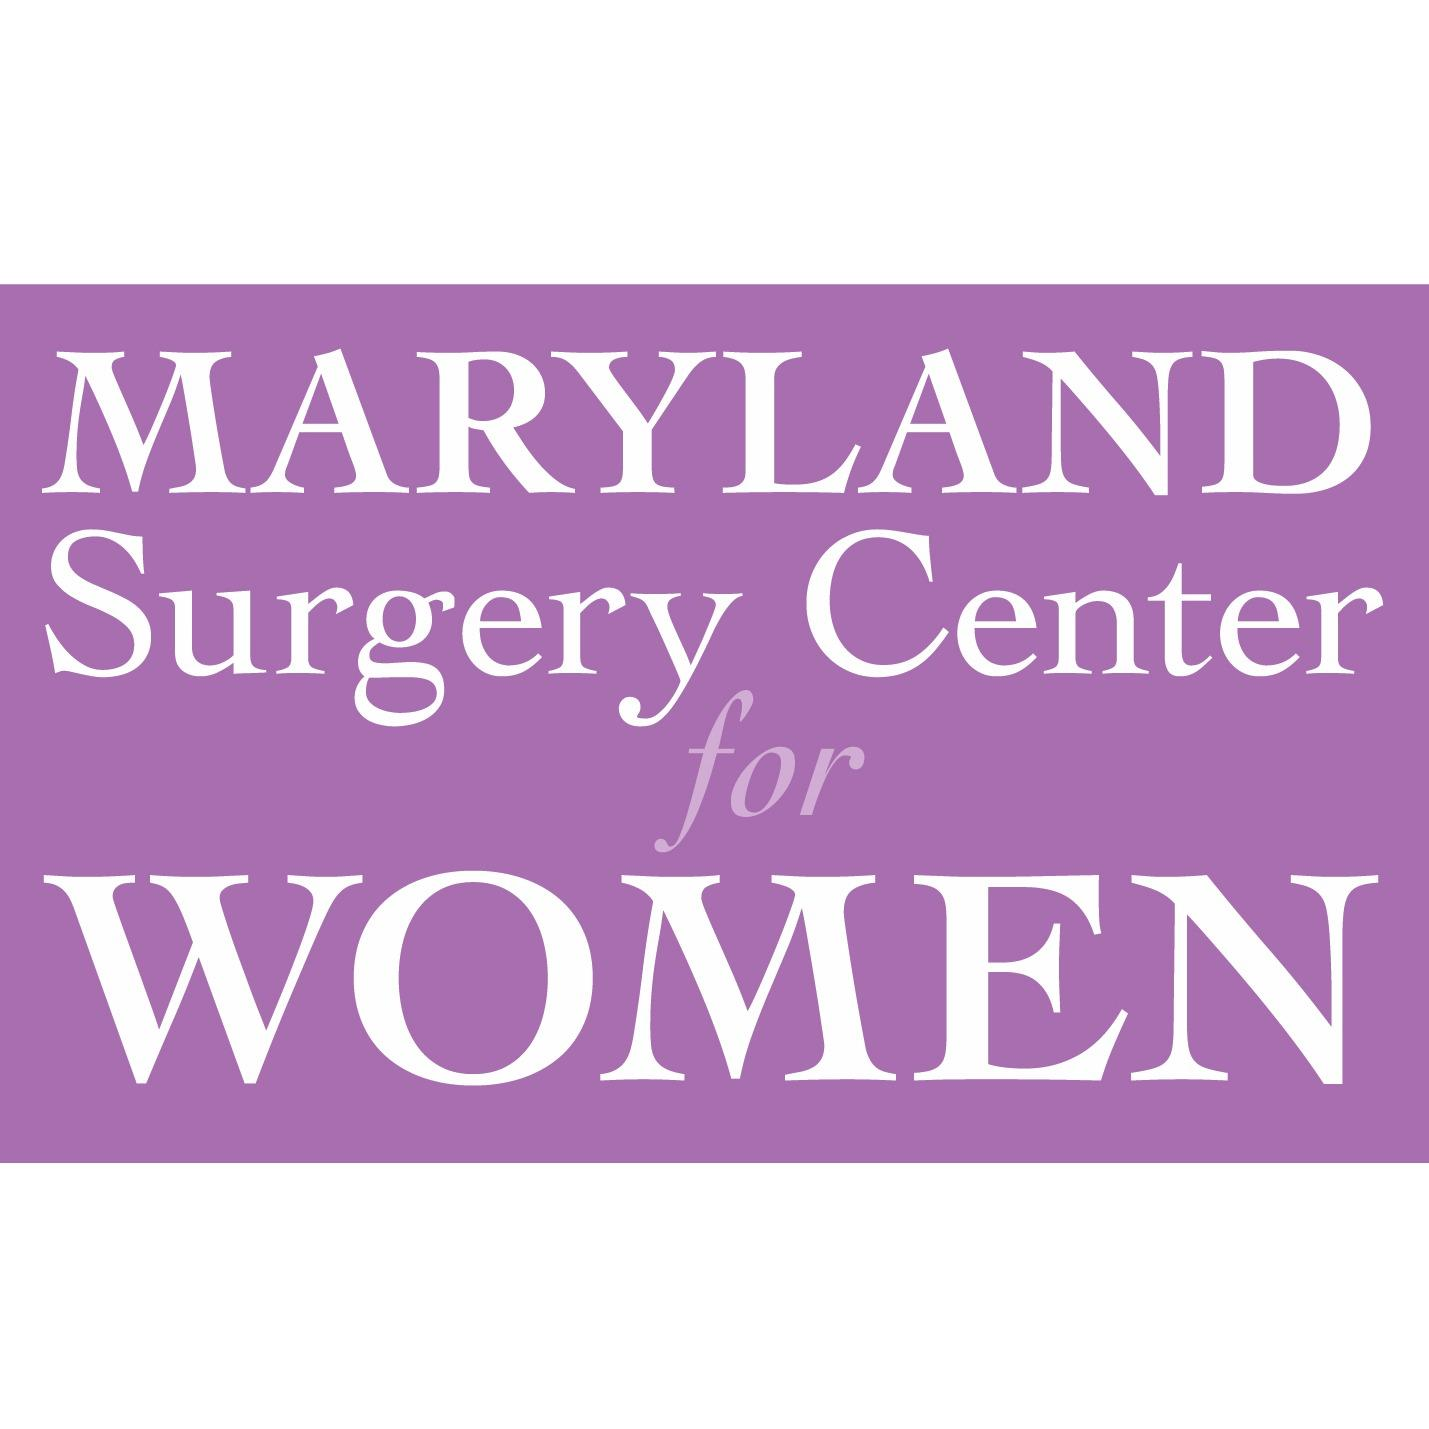 Maryland Surgery Center for Women